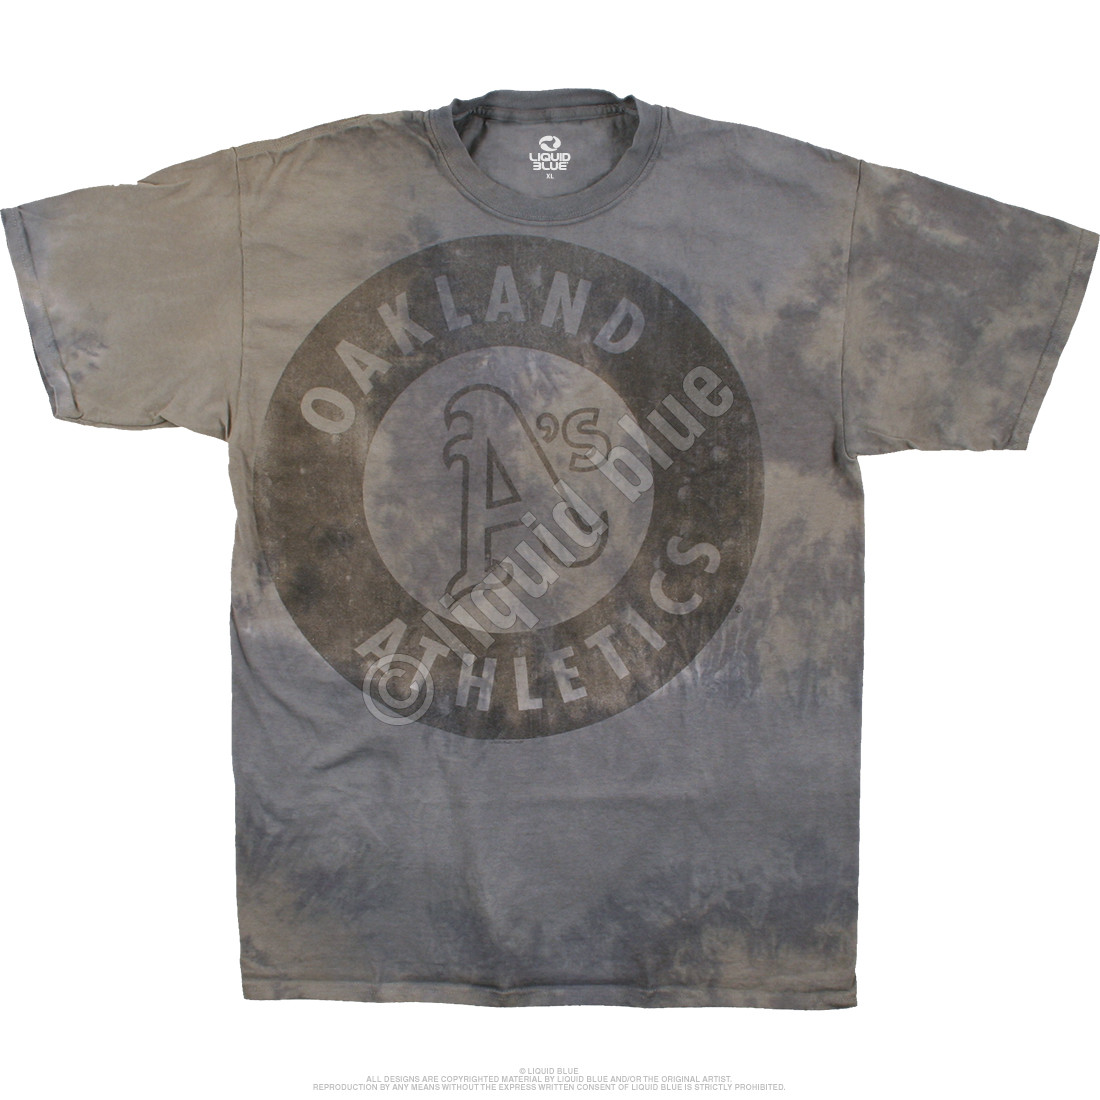 Oakland Athletics Tonal Tie-Dye T-Shirt - Clearance 30% OFF